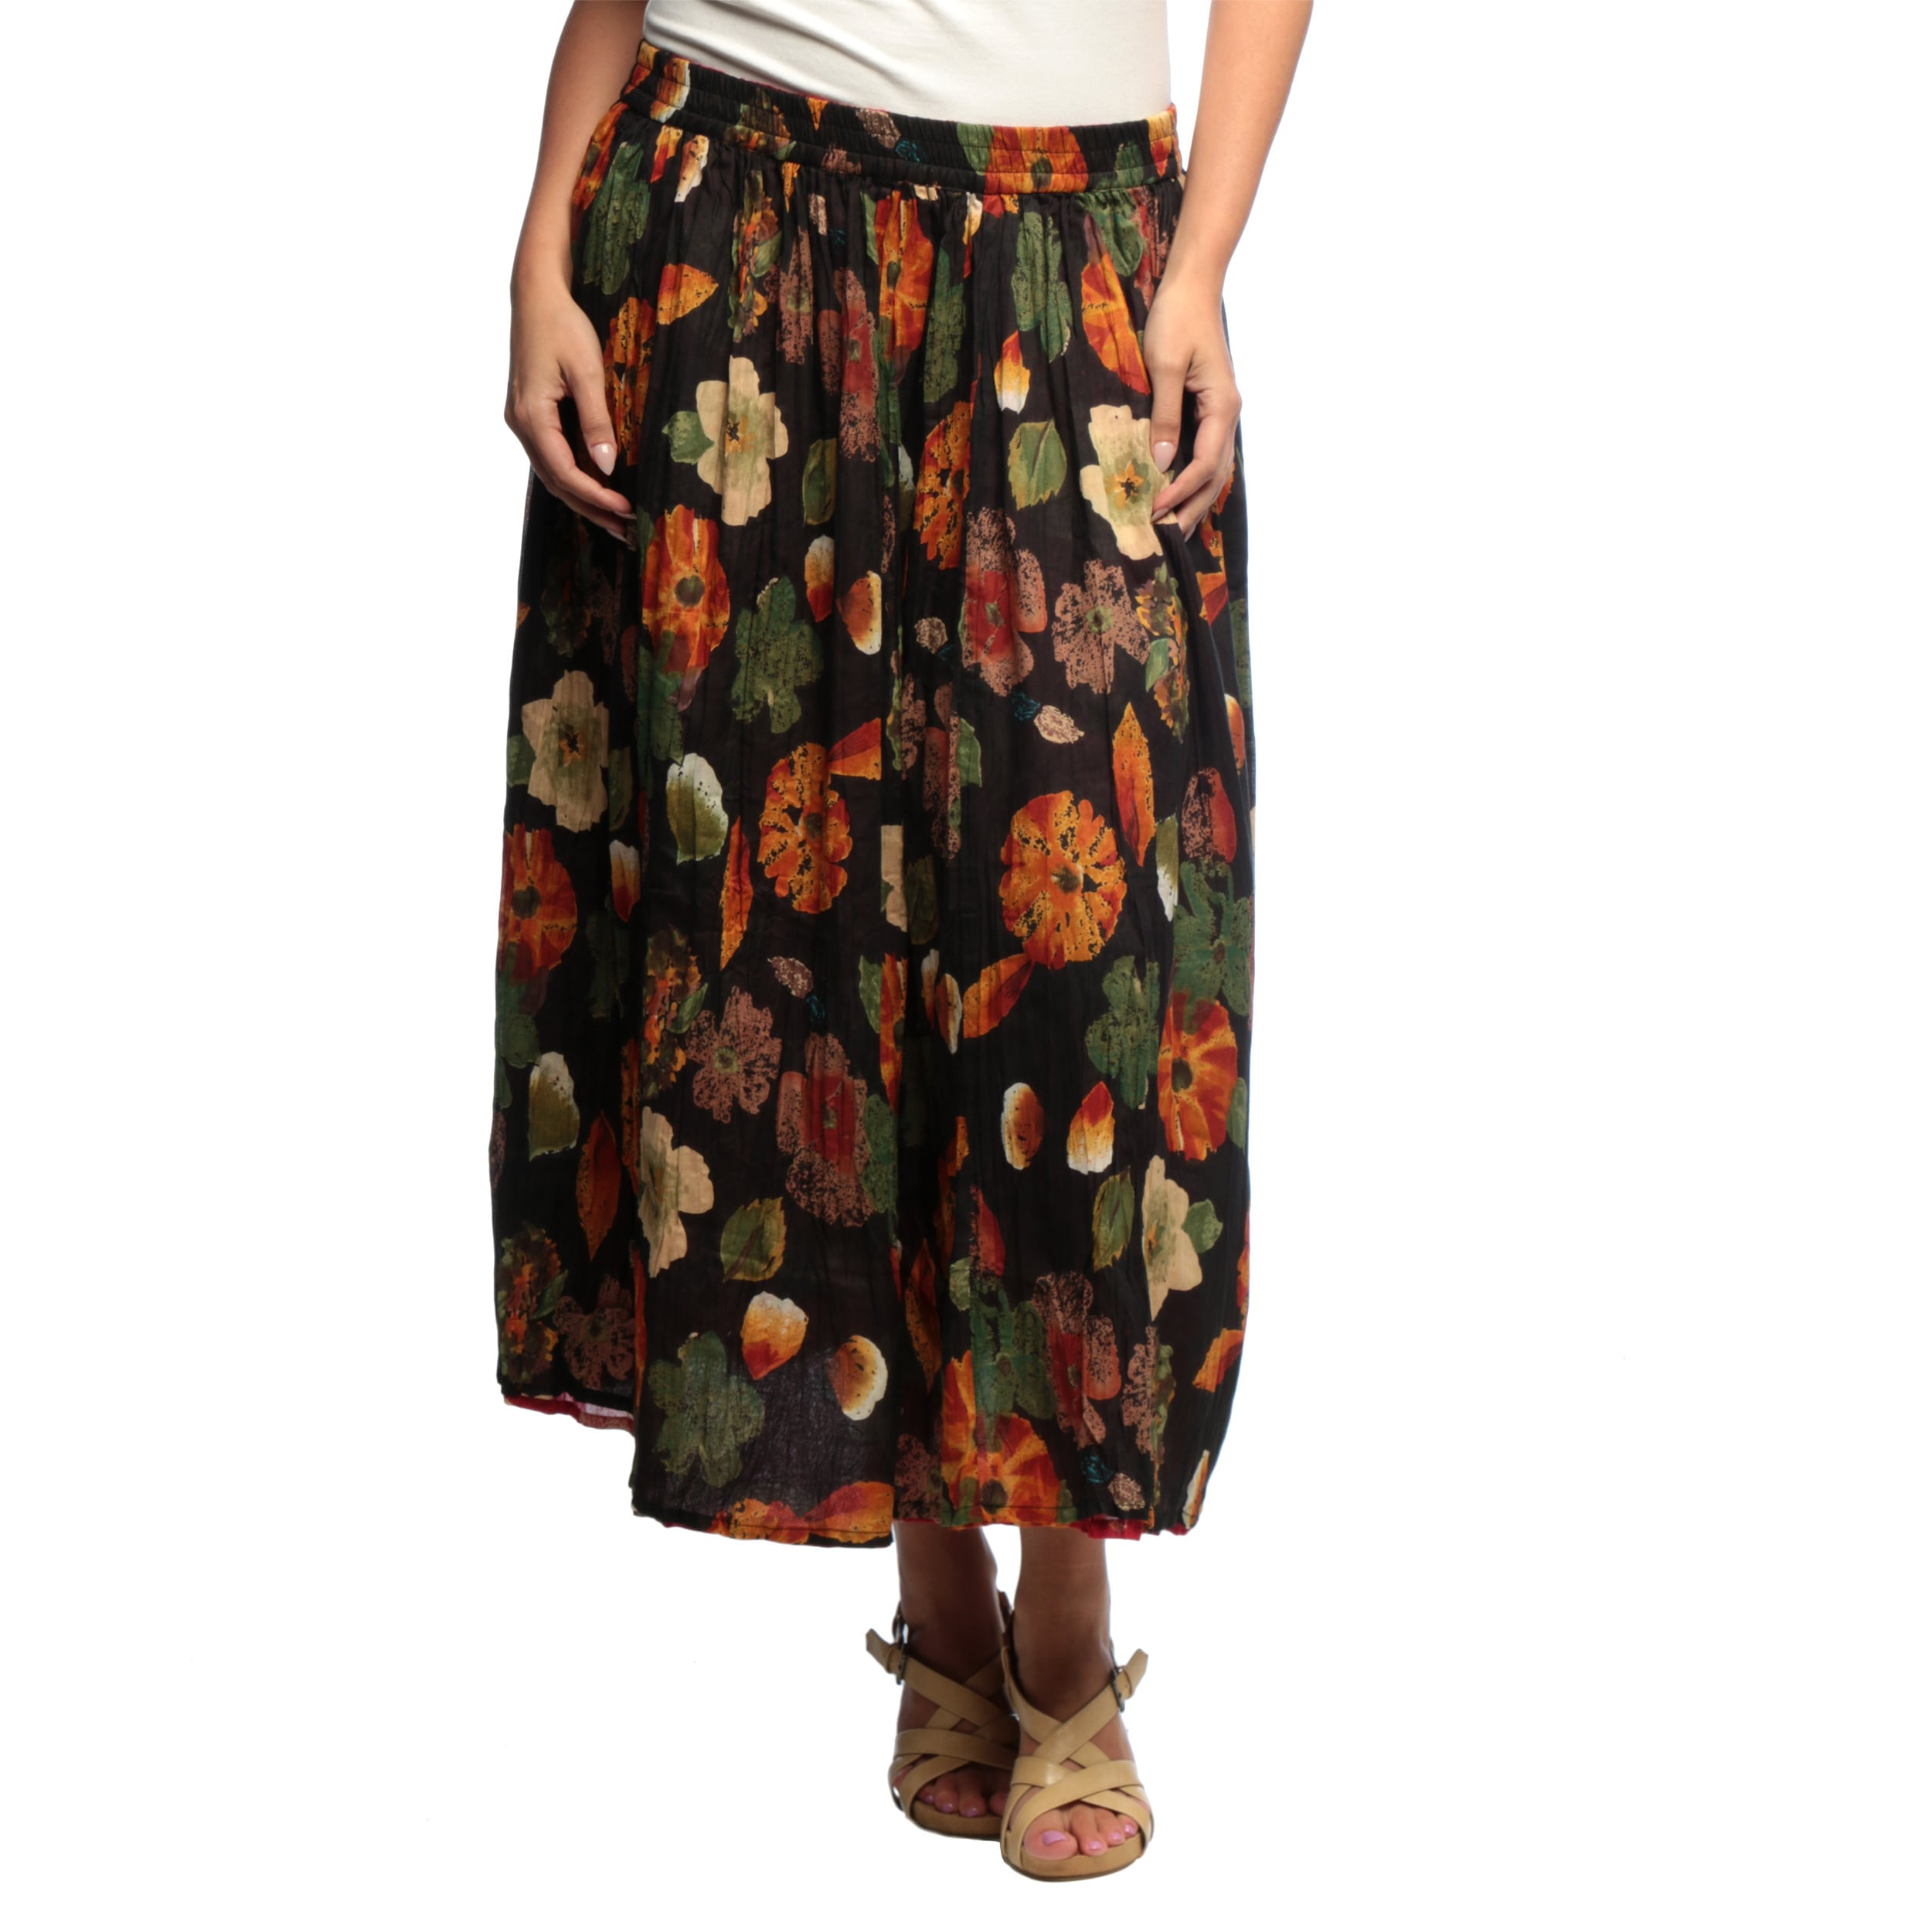 b72654e3a4f Shop La Cera Women s Plus Size Reversible Printed Broomstick Skirt - Free  Shipping On Orders Over  45 - Overstock - 6753308